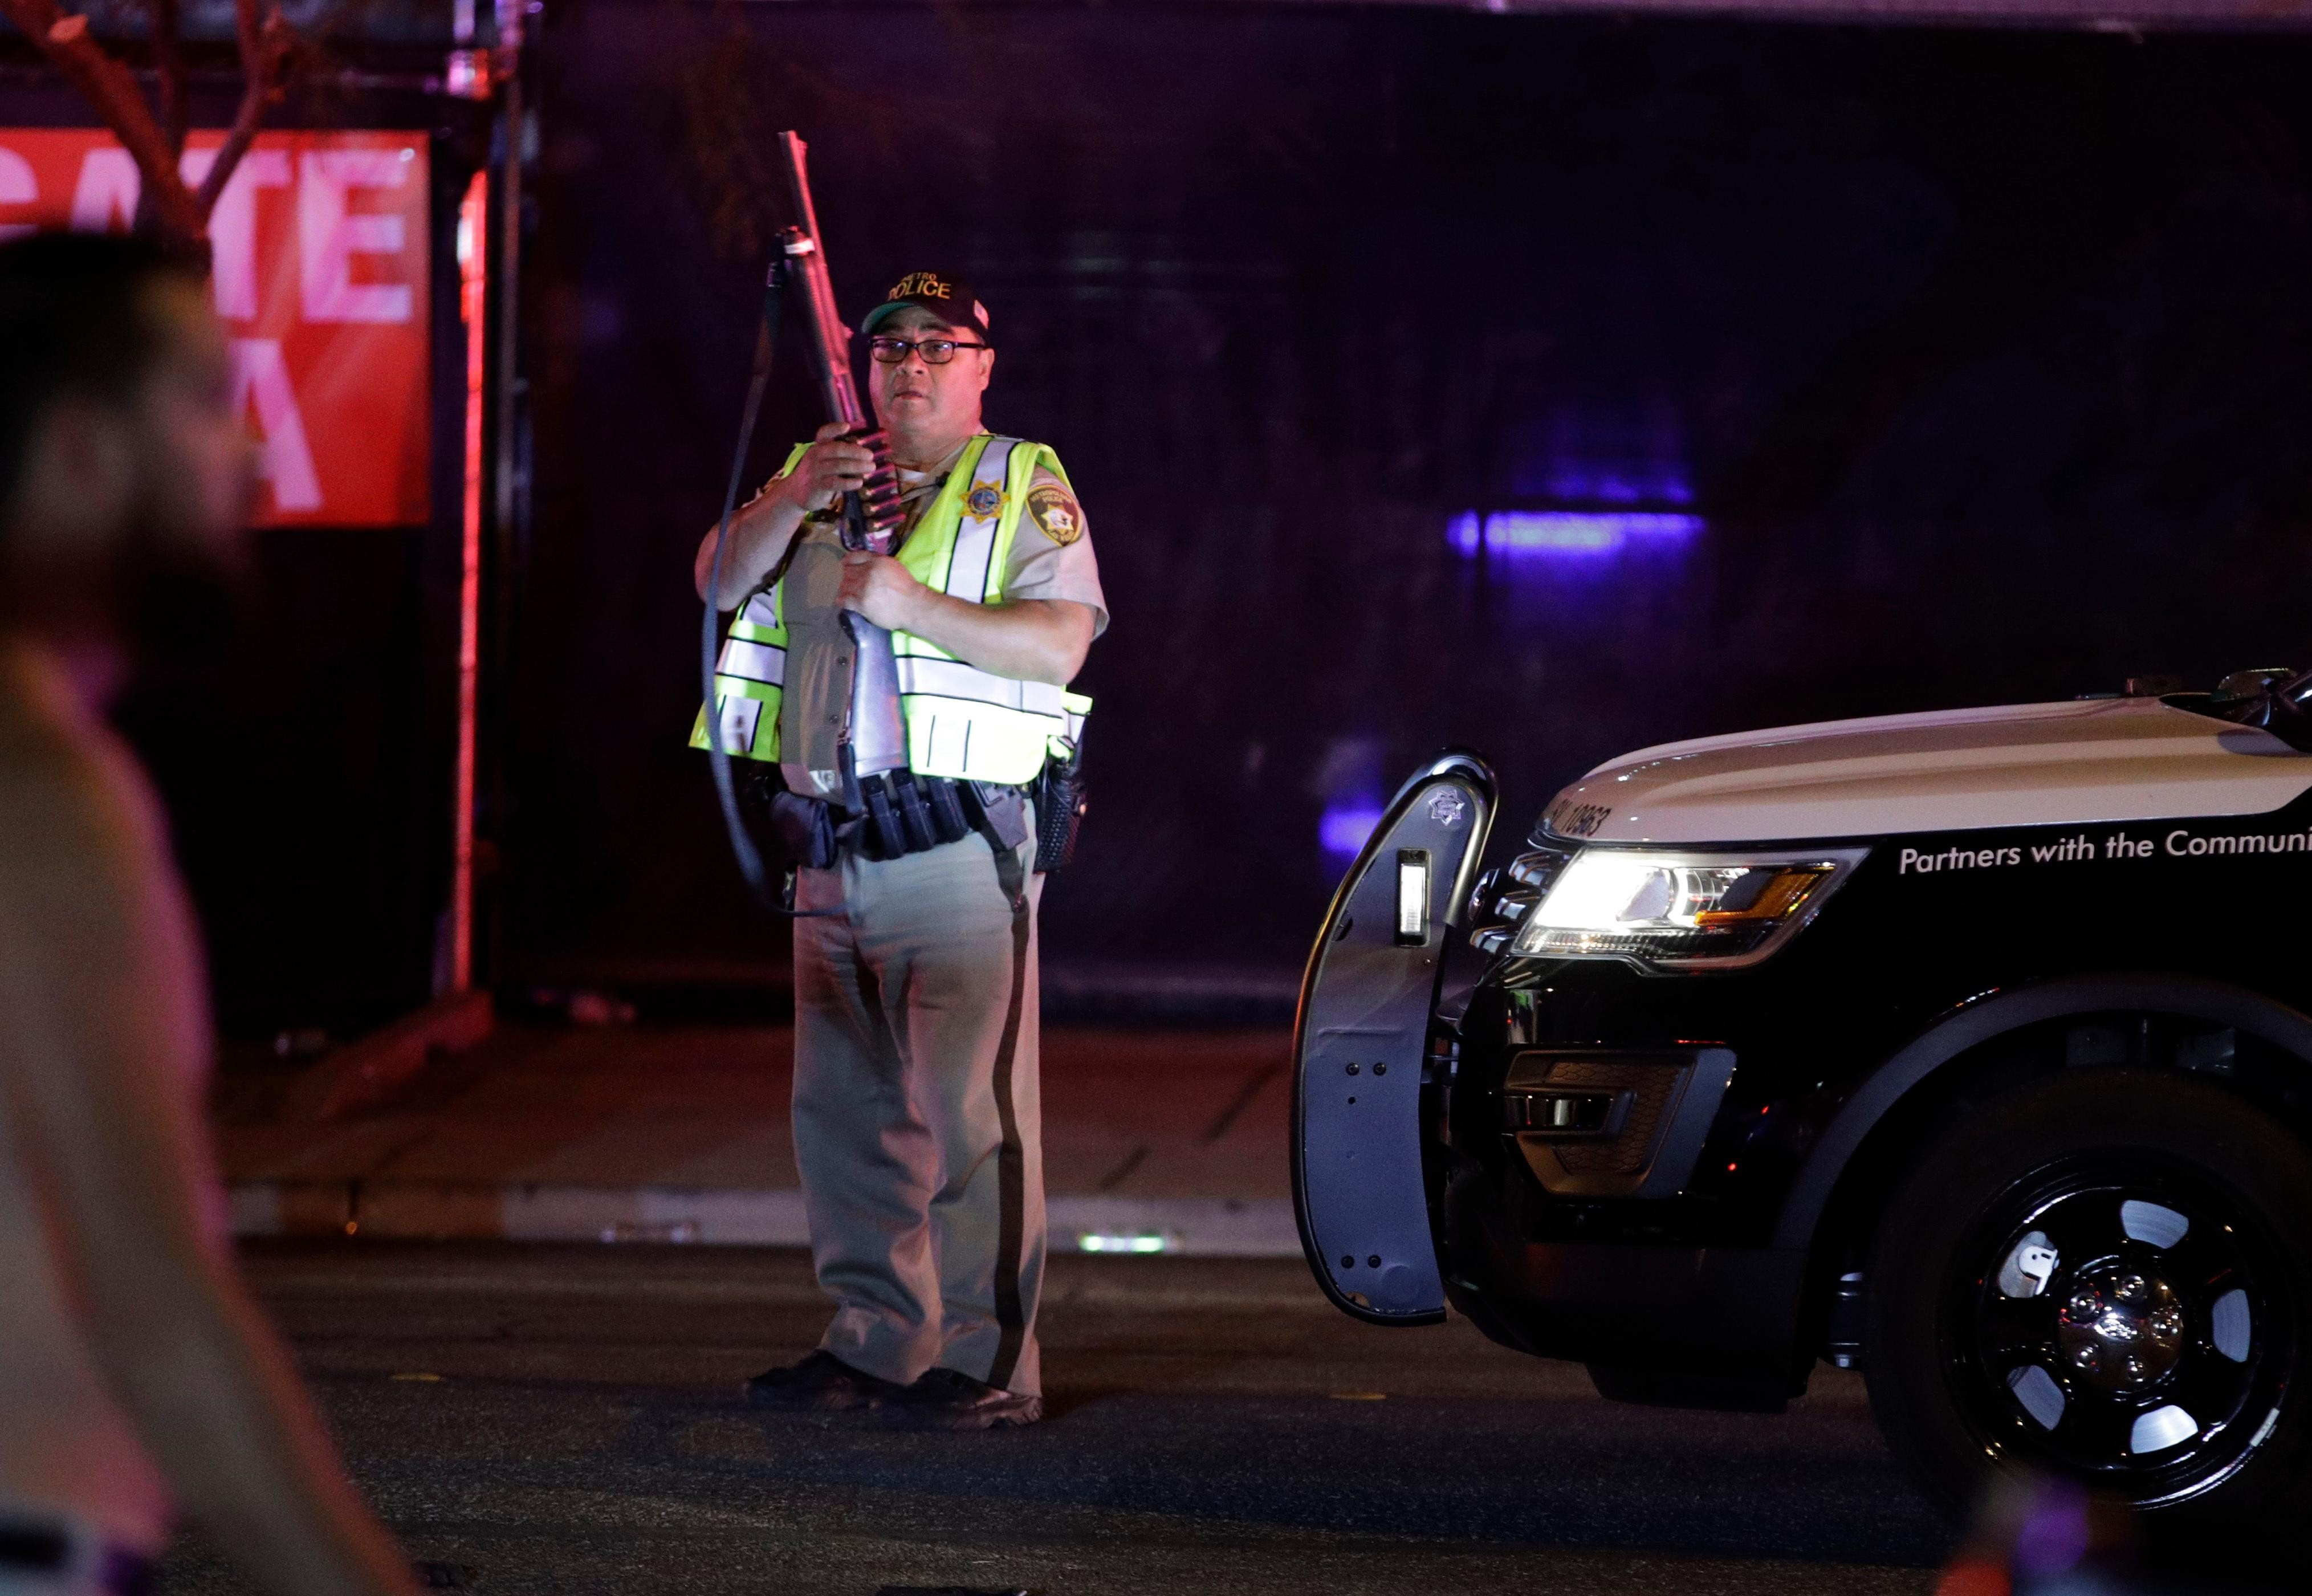 A police officer stands at the scene of a shooting along the Las Vegas Strip, Monday, Oct. 2, 2017, in Las Vegas. Multiple victims were being transported to hospitals after a shooting late Sunday at a music festival on the Las Vegas Strip. (AP Photo/John Locher)